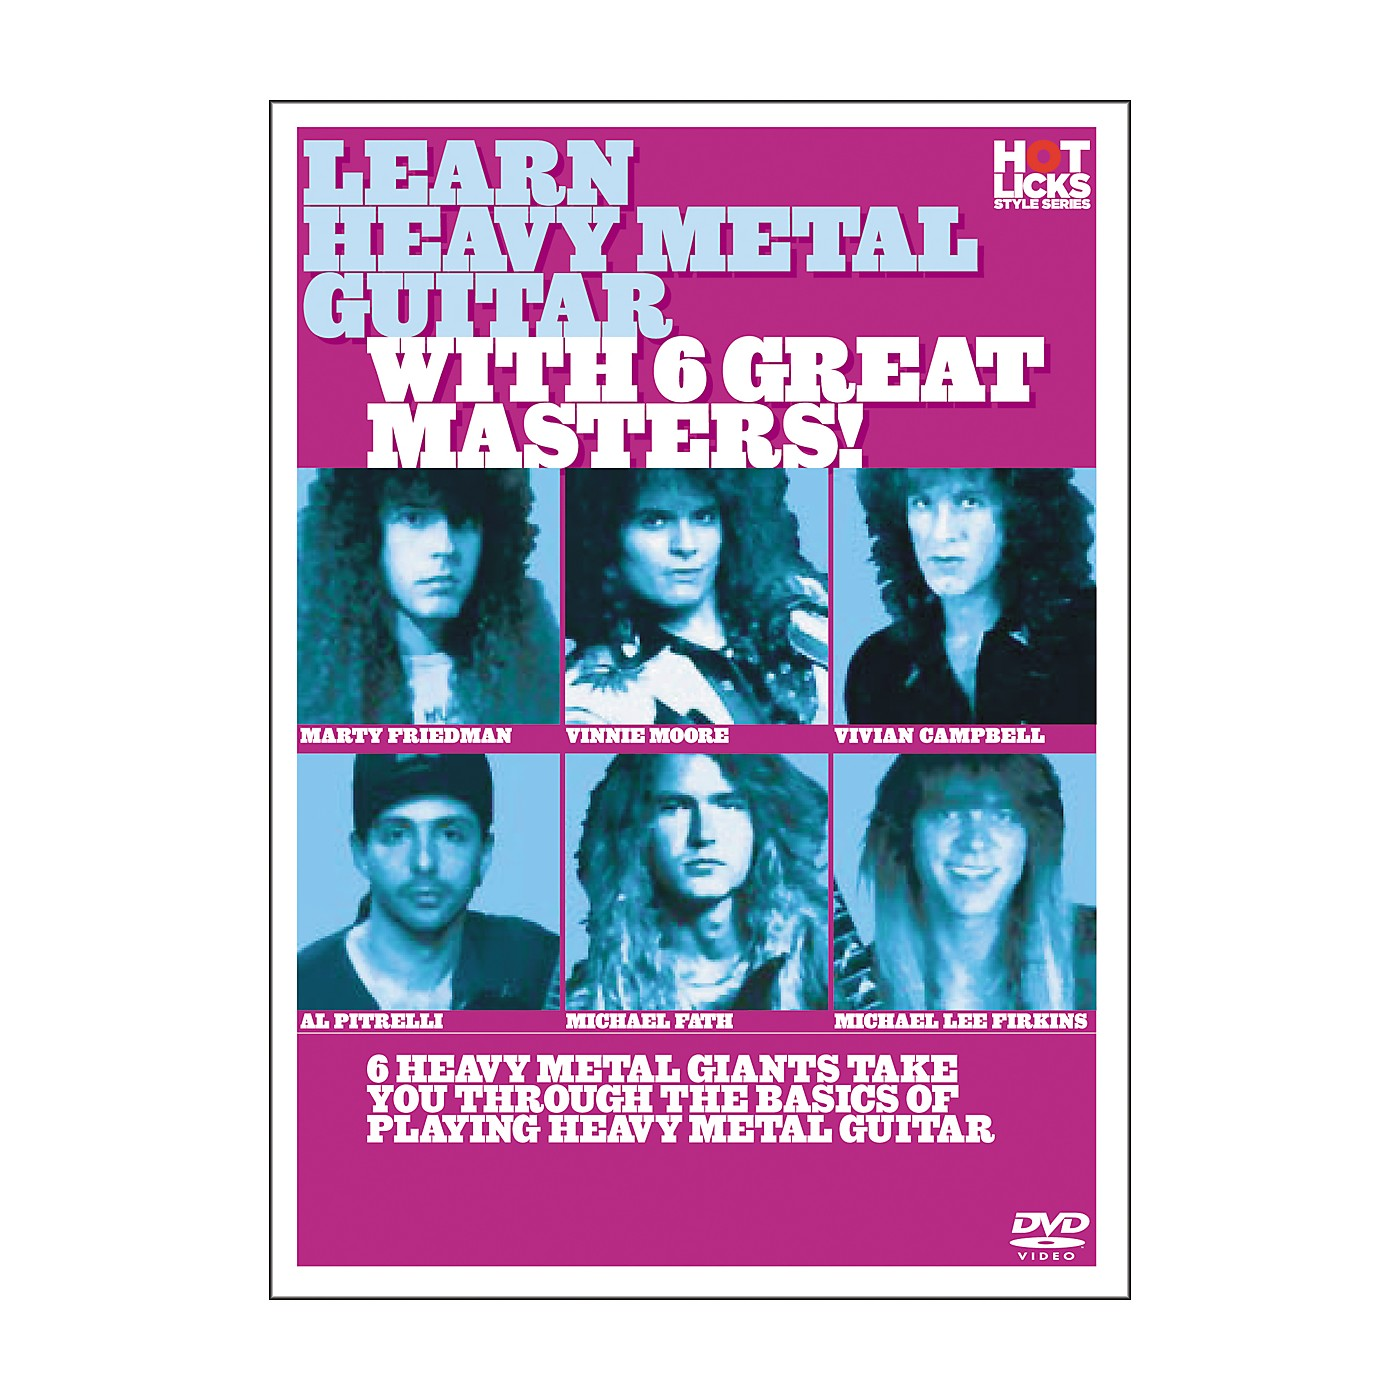 Hot Licks Learn Heavy Metal Guitar with 6 Great Masters DVD thumbnail